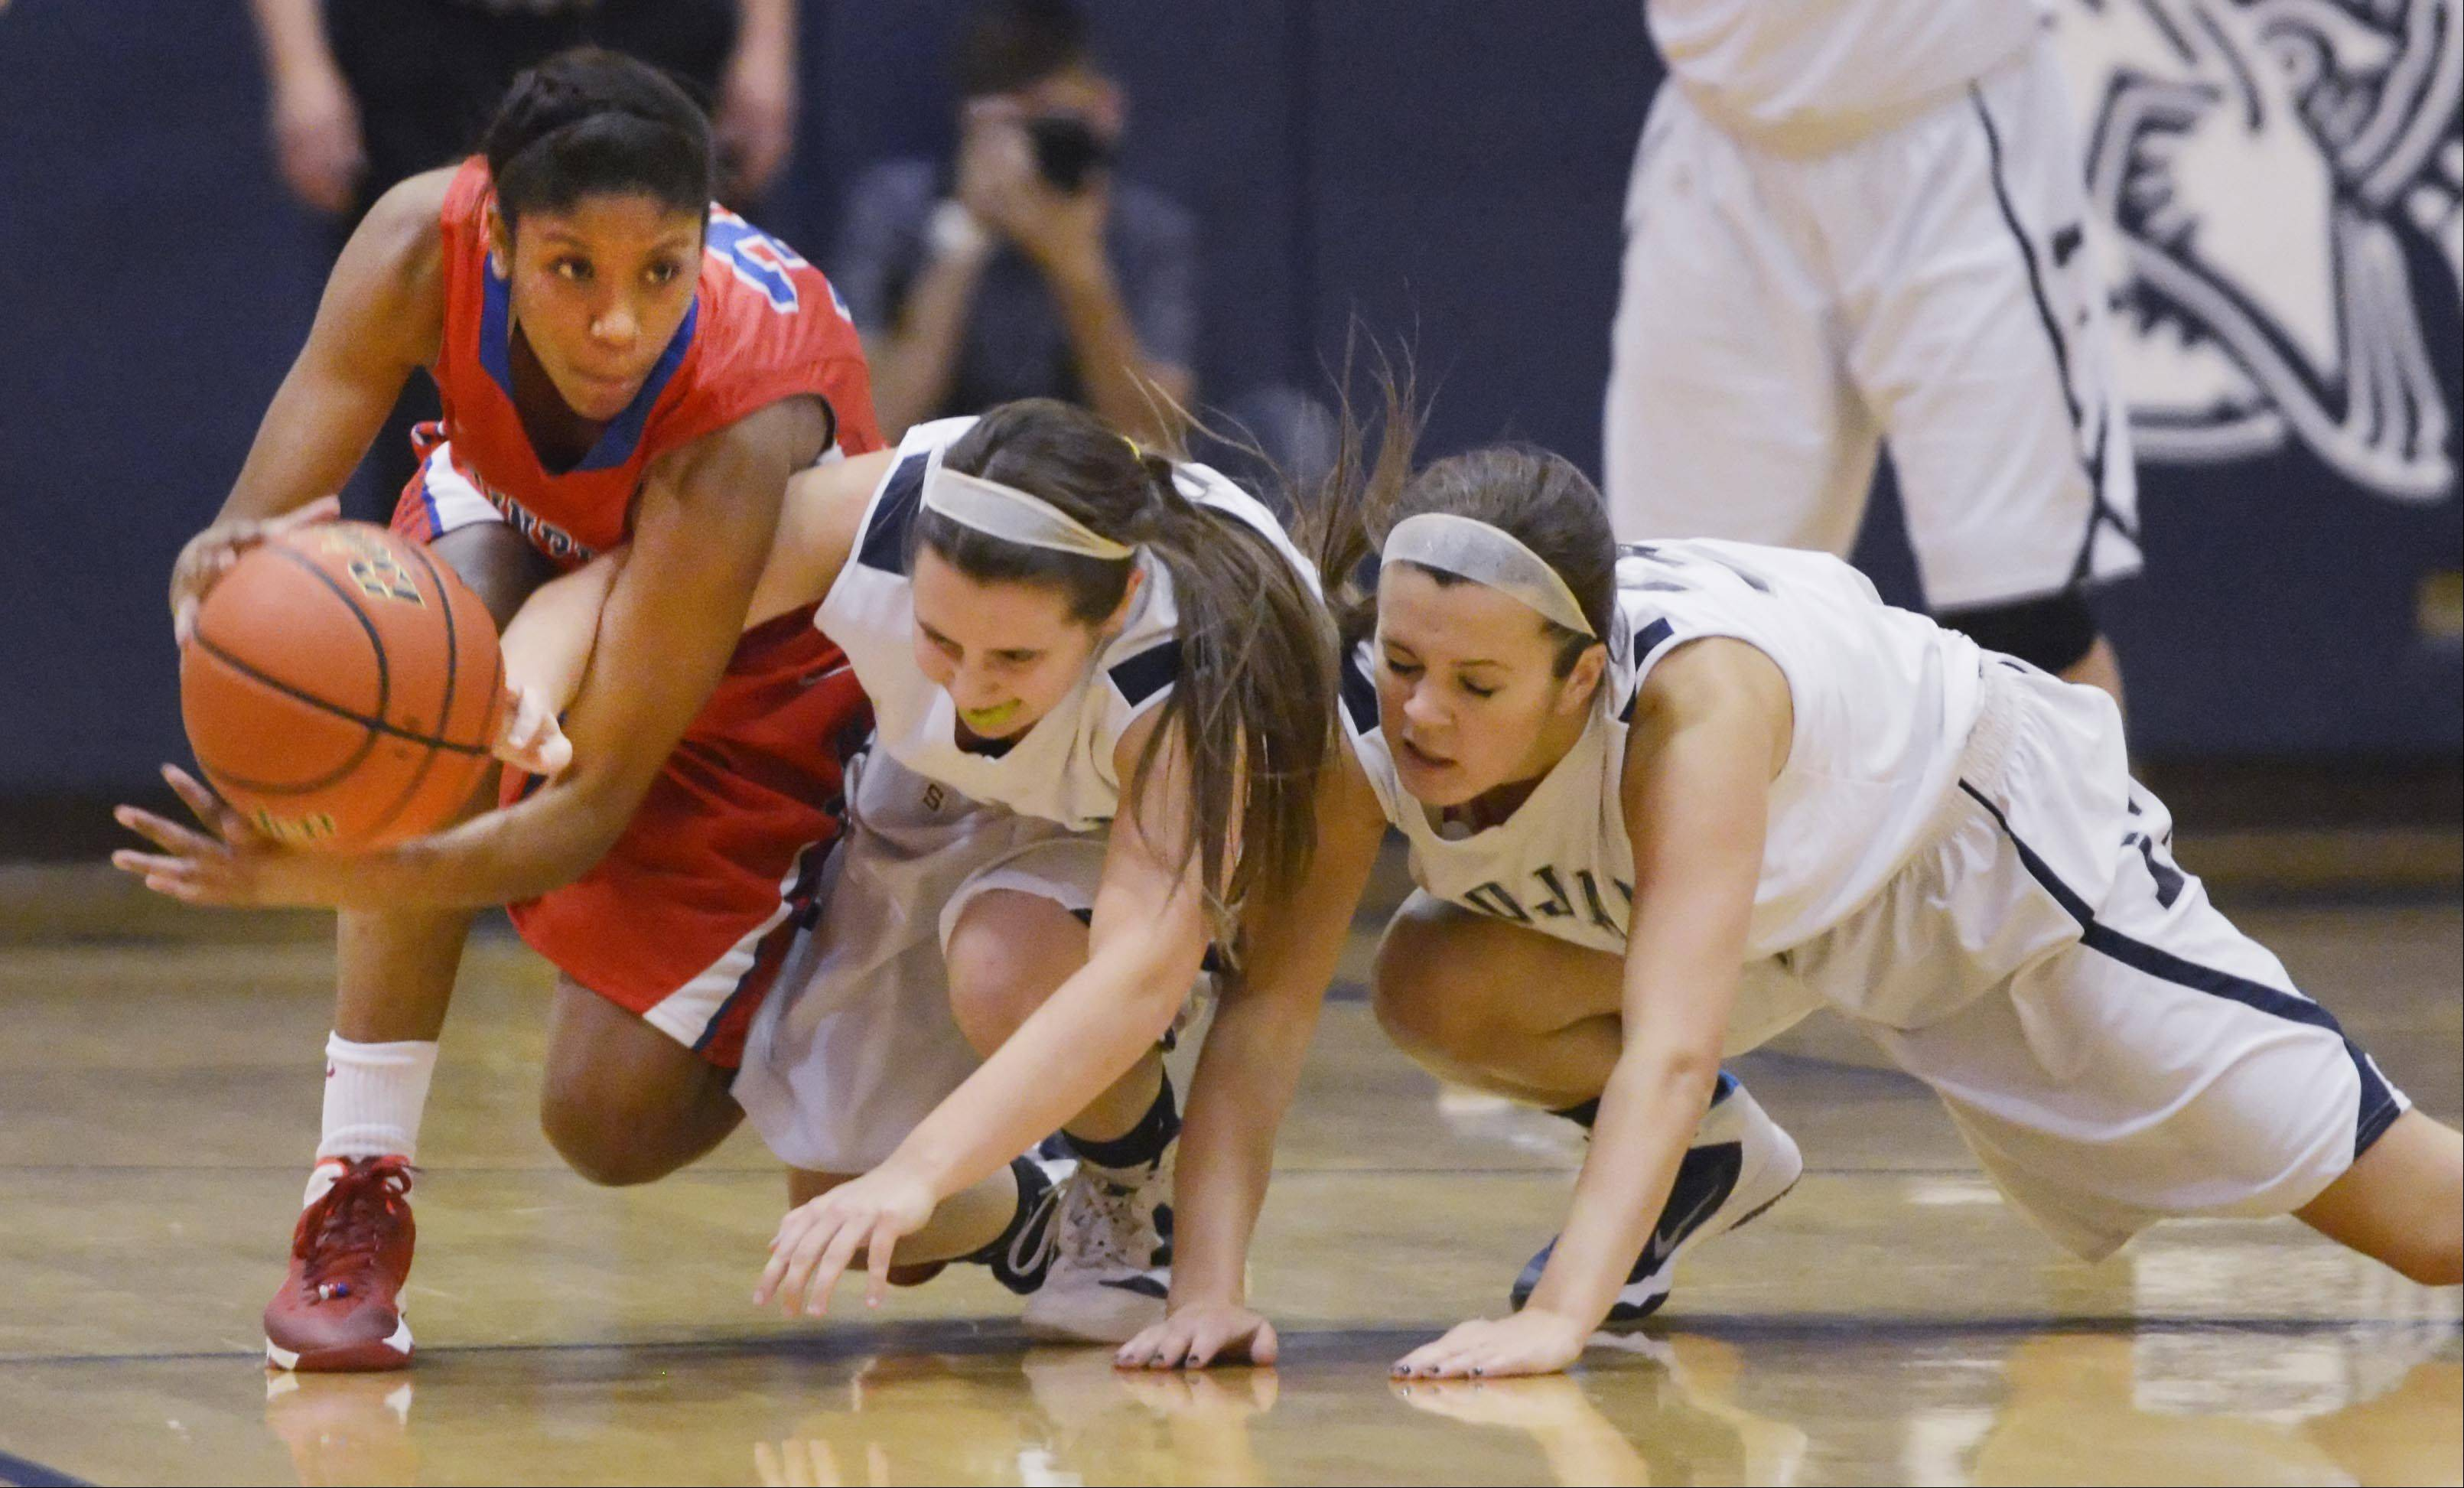 Dundee-Crown�s Kayla Lawernce and Cary-Grove�s Amy Clemment and Chrissy Sopchyk fight for a loose ball.